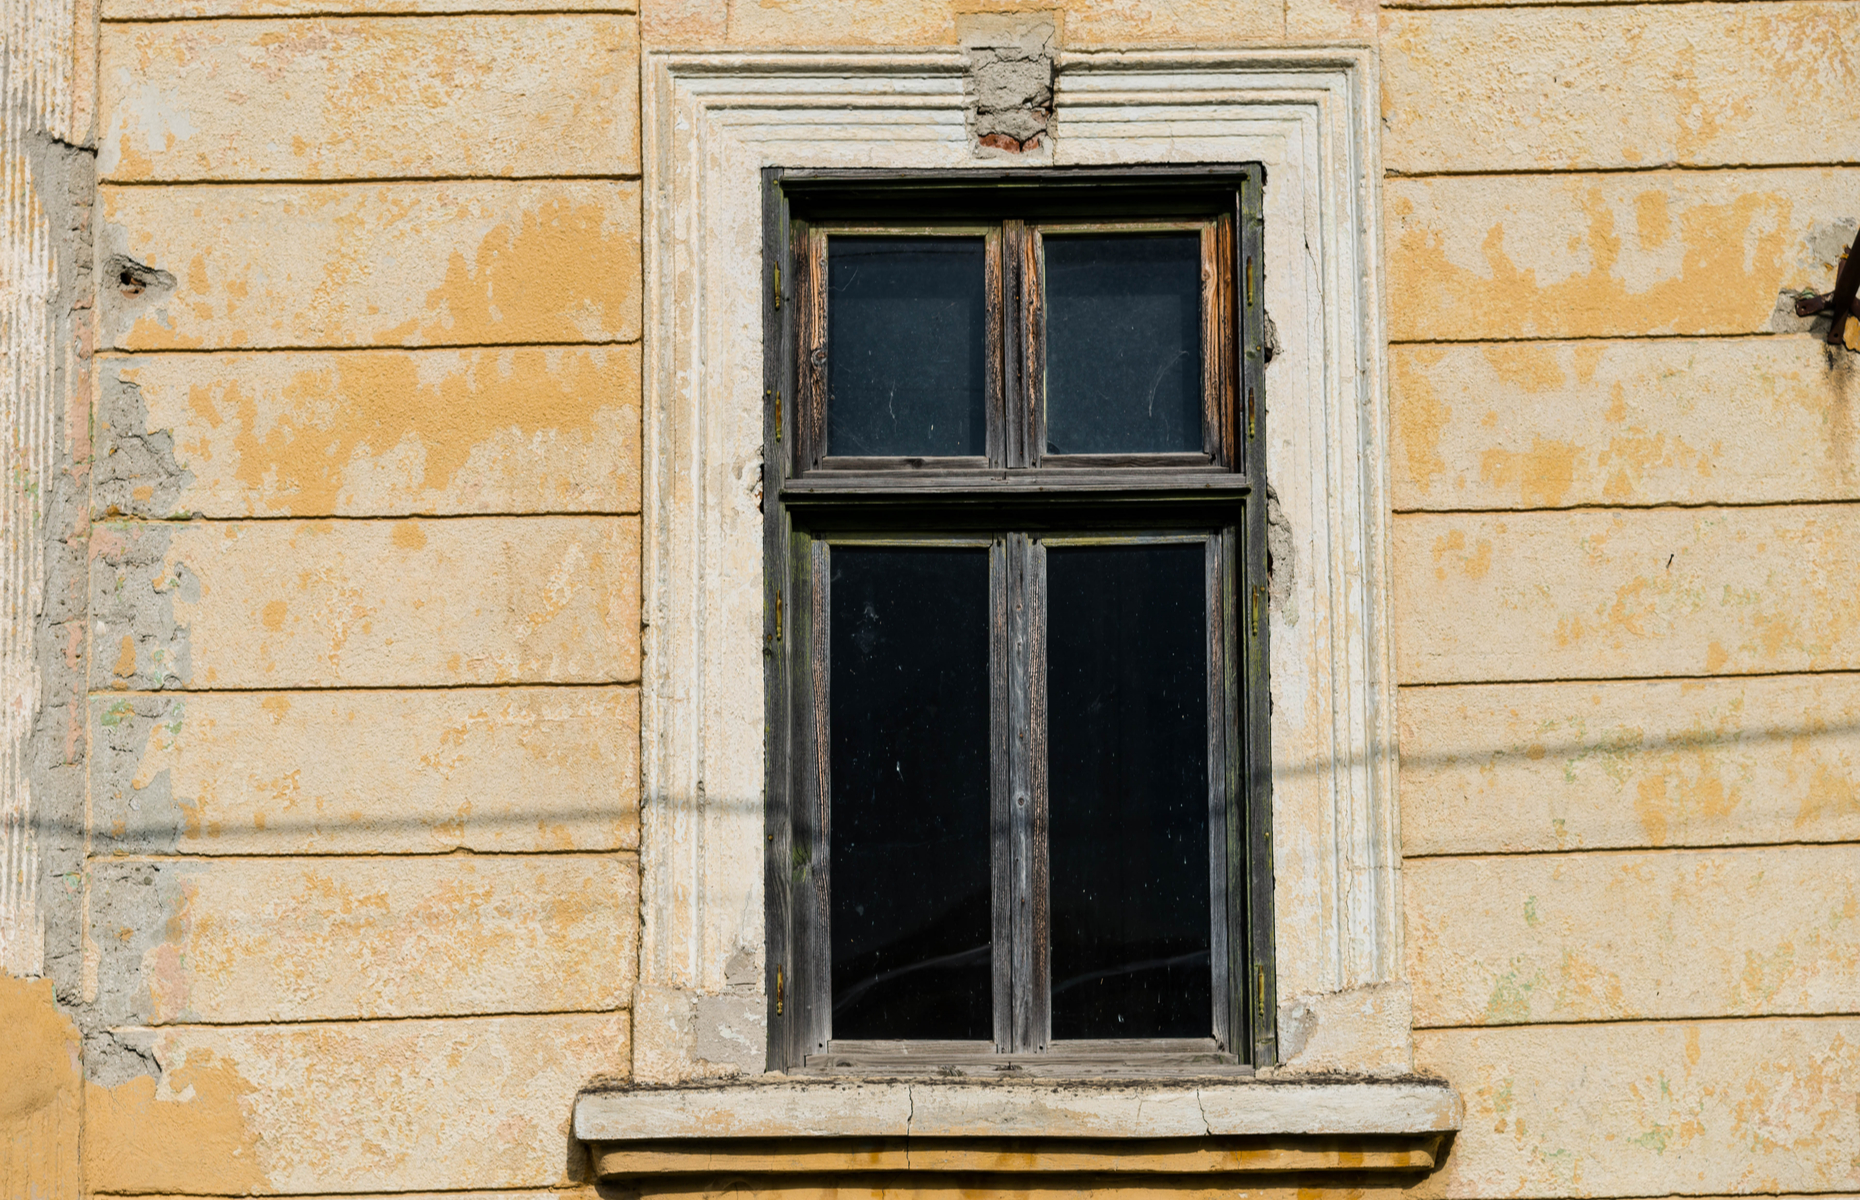 Listed properties are bound by tight regulations when it comes to updating windows. Image: Benedek Alpar/Shutterstock